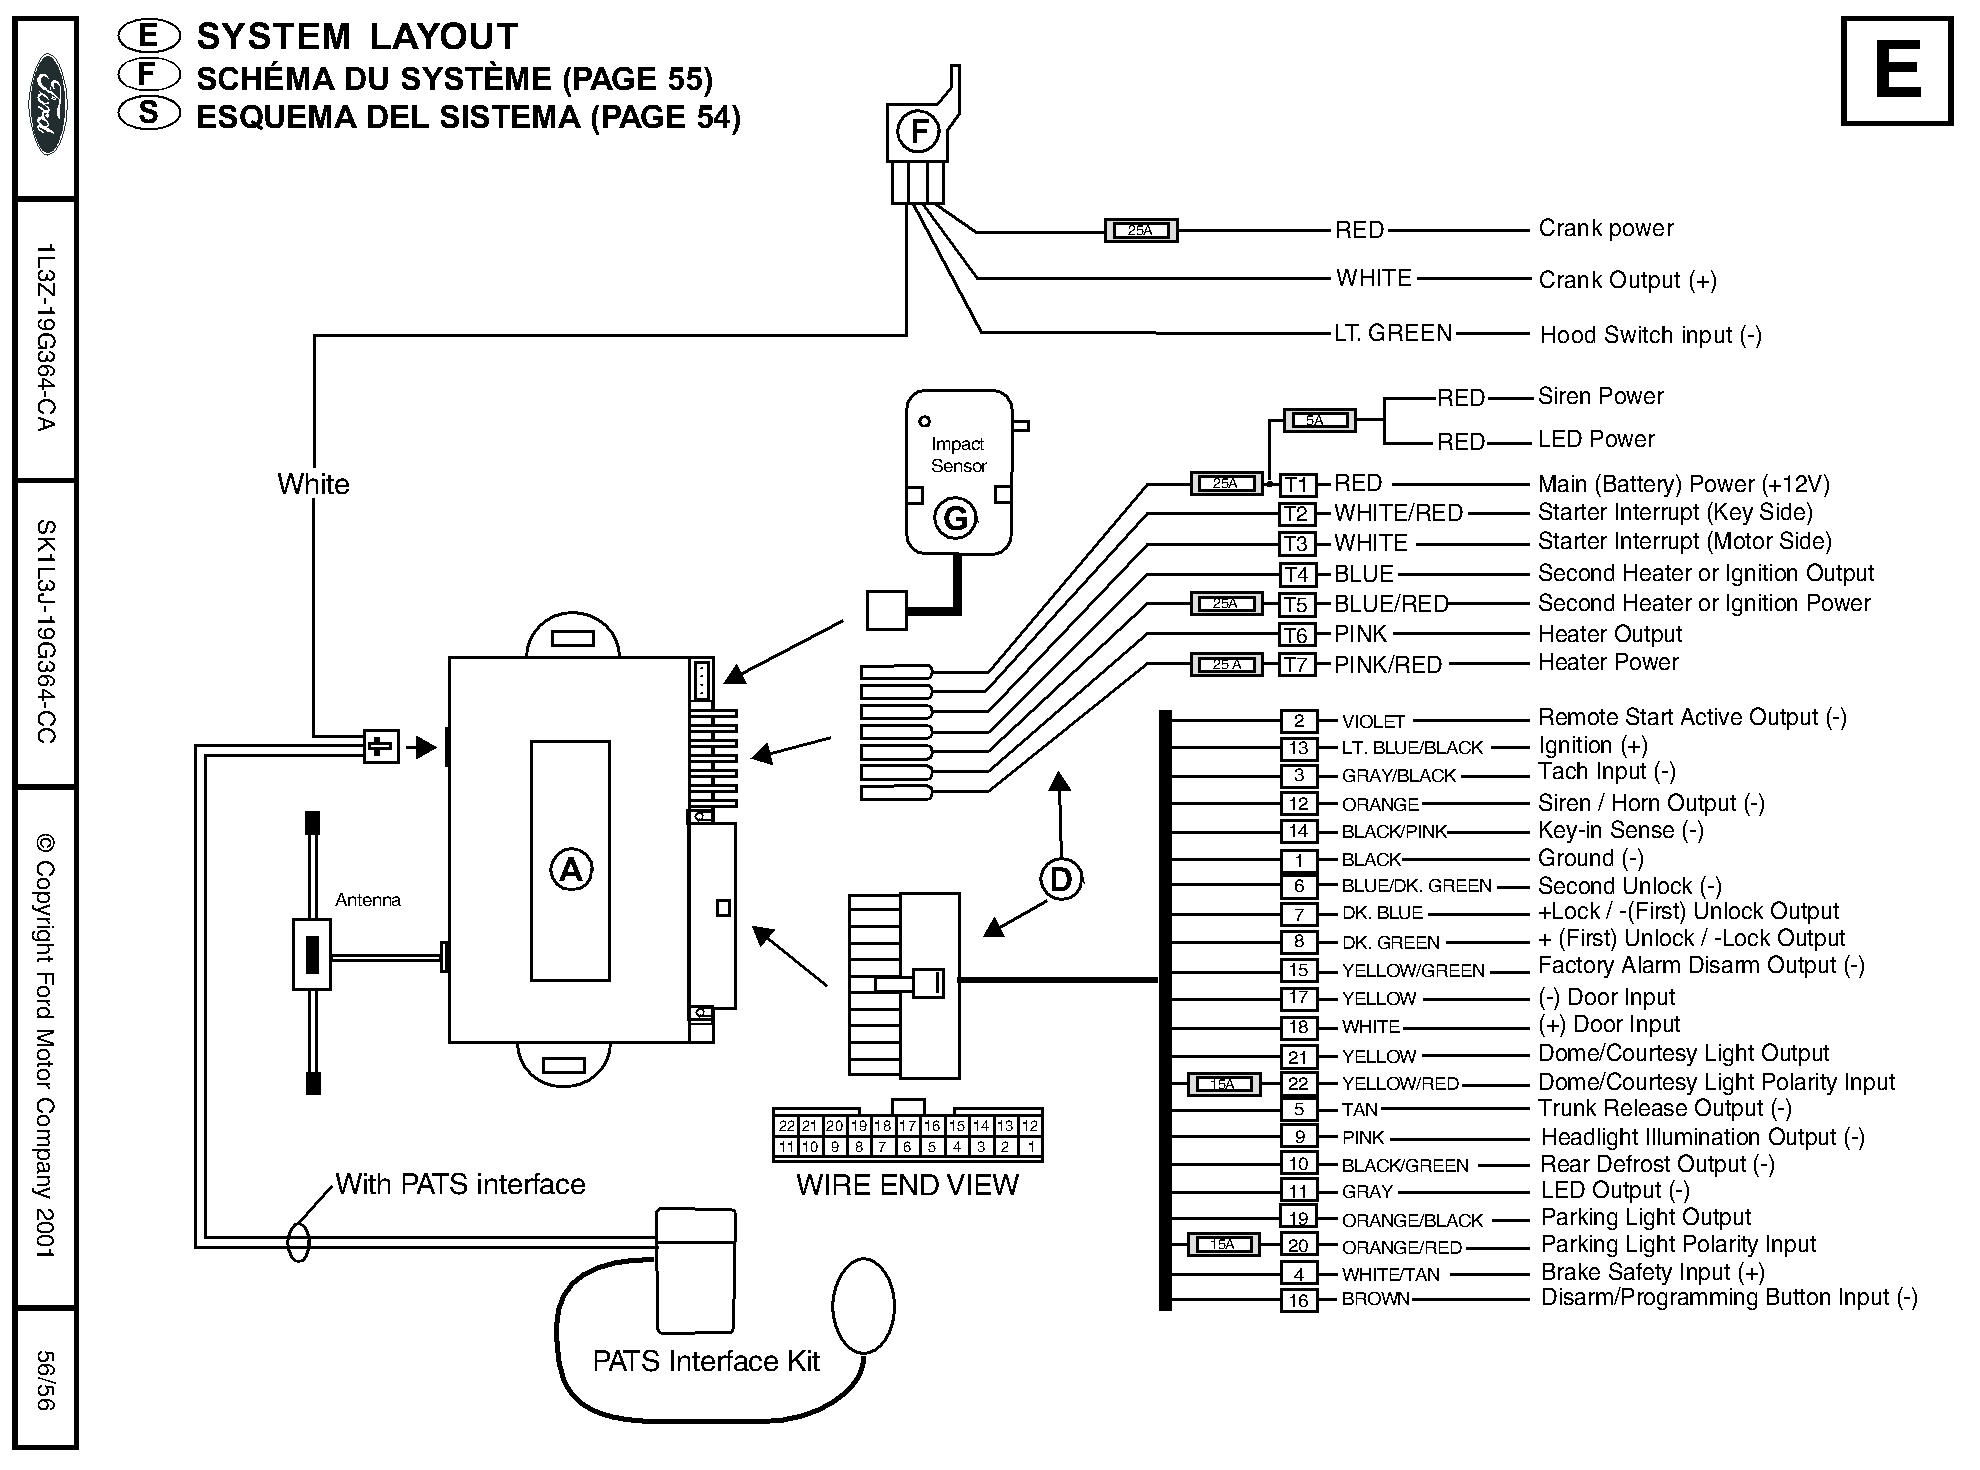 Wiring Diagram For Ford F350 2005 Parking Lights further 2010 Jeep  mander Fuse Box furthermore F350 Central Junction Box as well 2014 Toyota Tundra Wiring Diagrams Color Code additionally 05 F350 6 0 Fuse Box Diagram Super Duty Puzzle 1. on ford f 350 fuse panel diagram